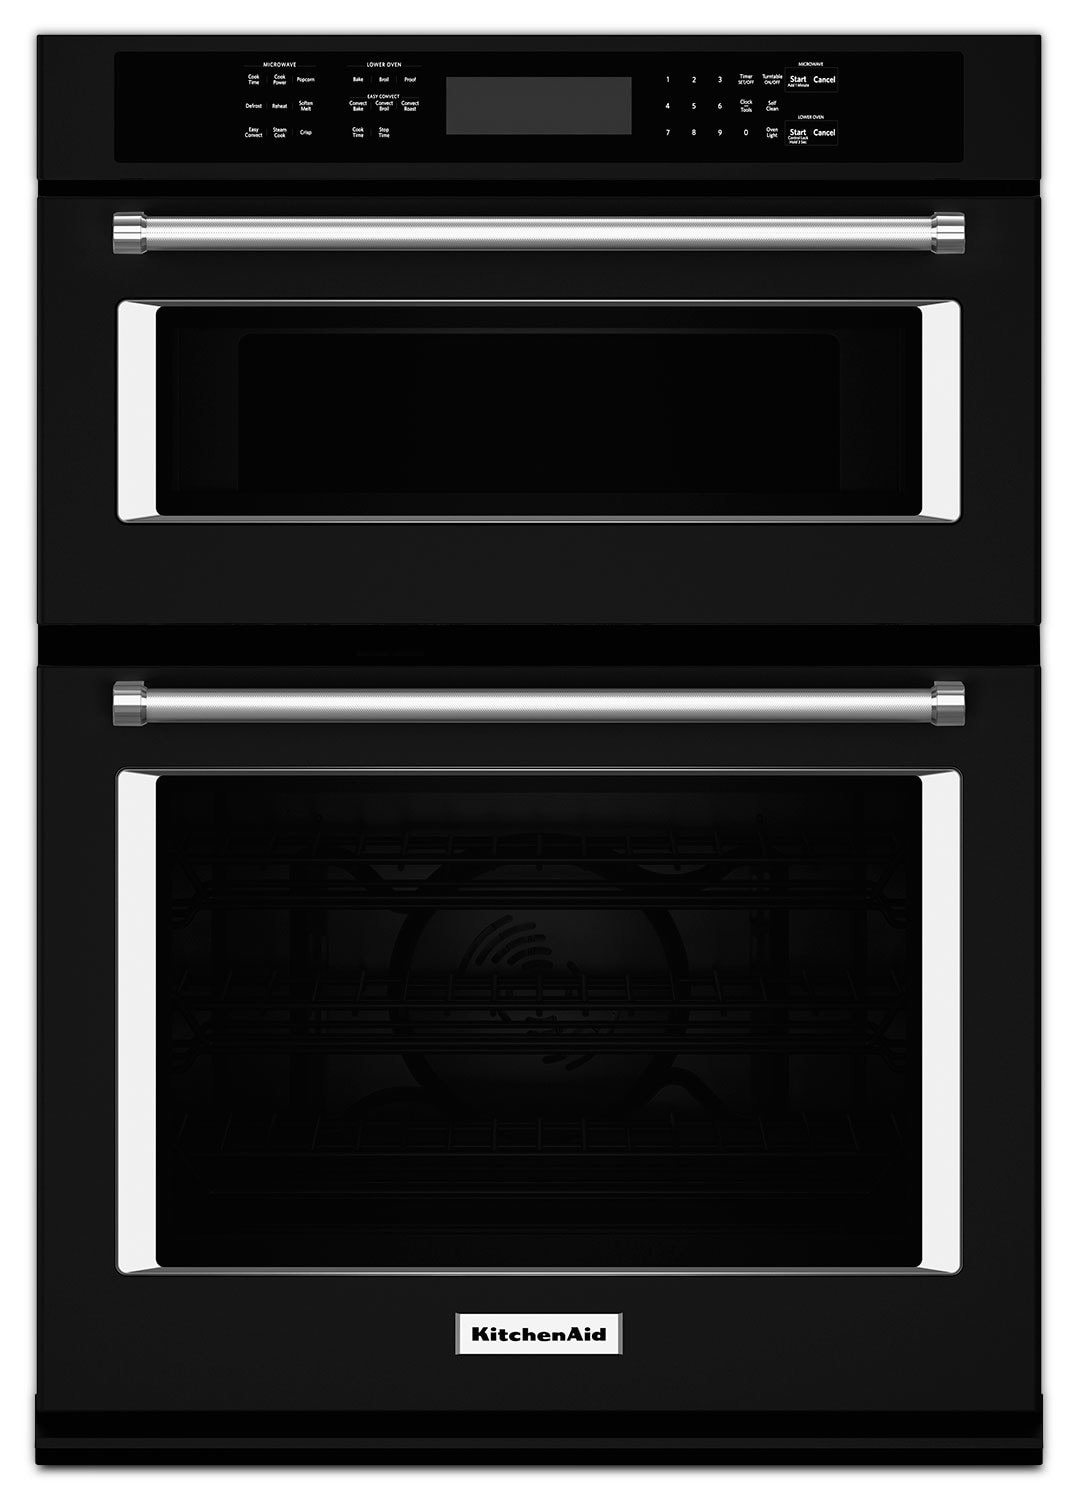 Cooking Products - KitchenAid Black Wall Oven (4.3 Cu. Ft.) w/ Microwave (1.4 Cu. Ft.) - KOCE507EBL